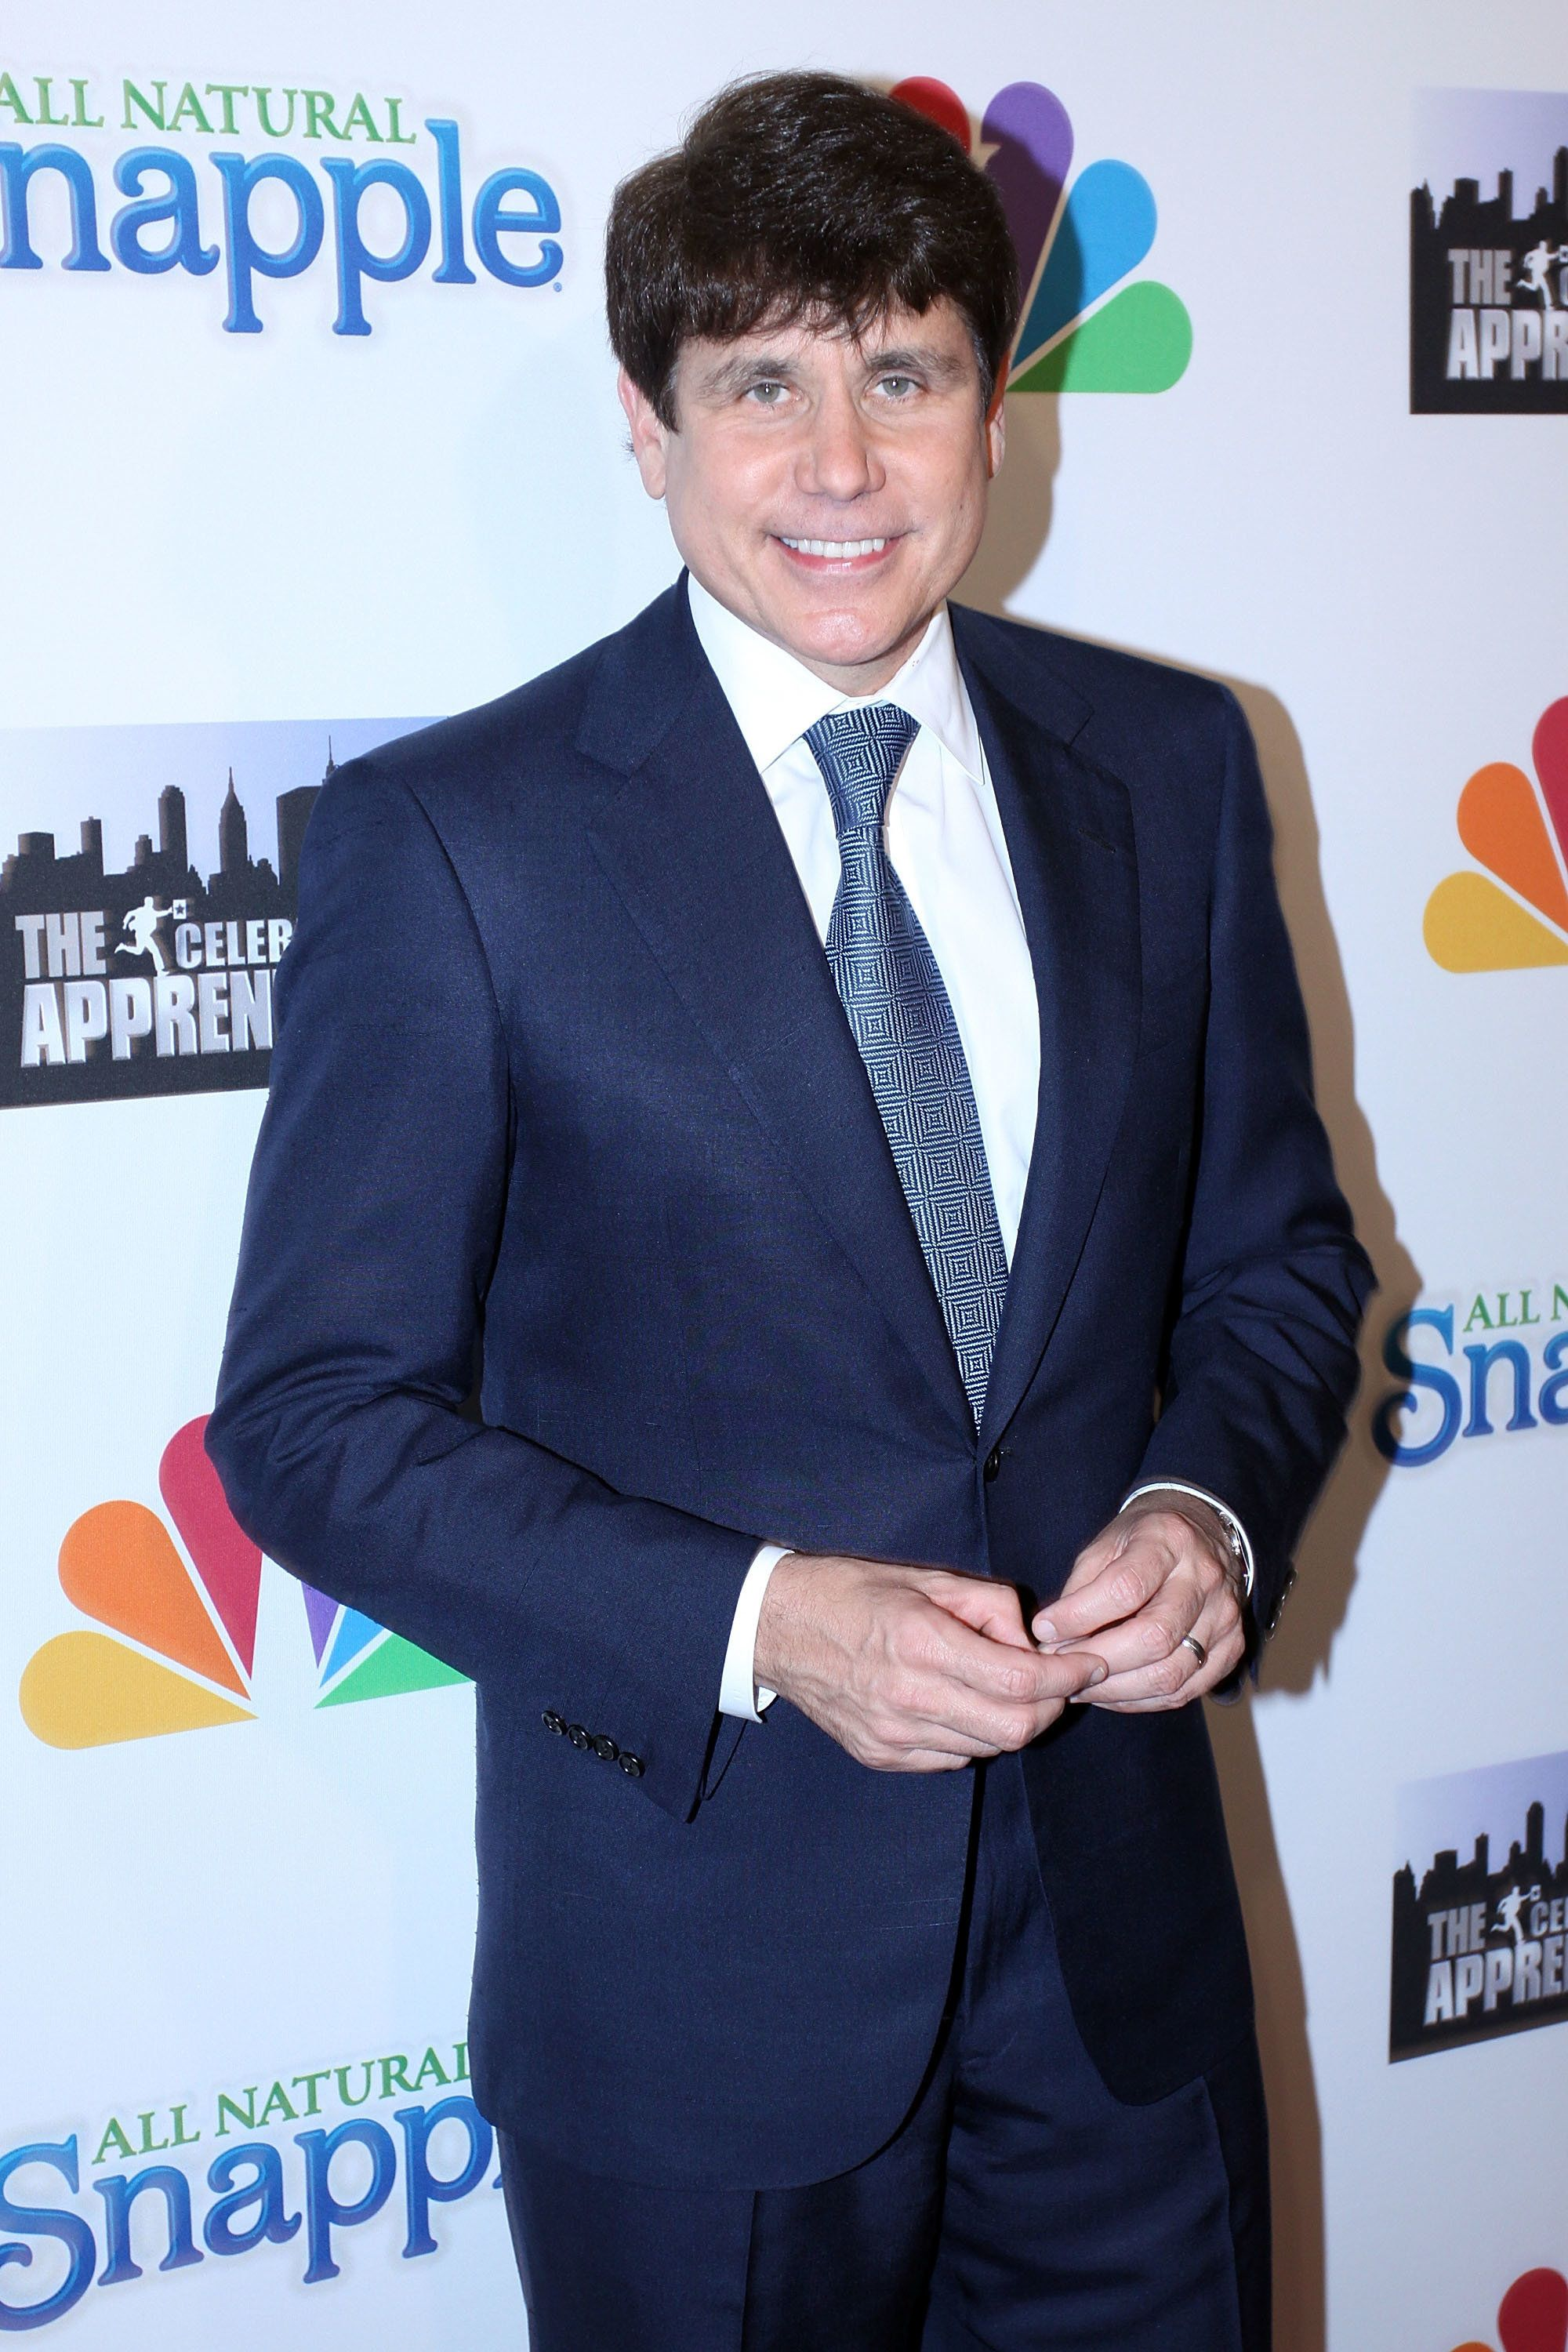 """Blagojevich, seen at a party for """"The Celebrity Apprentice"""" in 2010,was sentenced to 14 years in prison for public corr"""